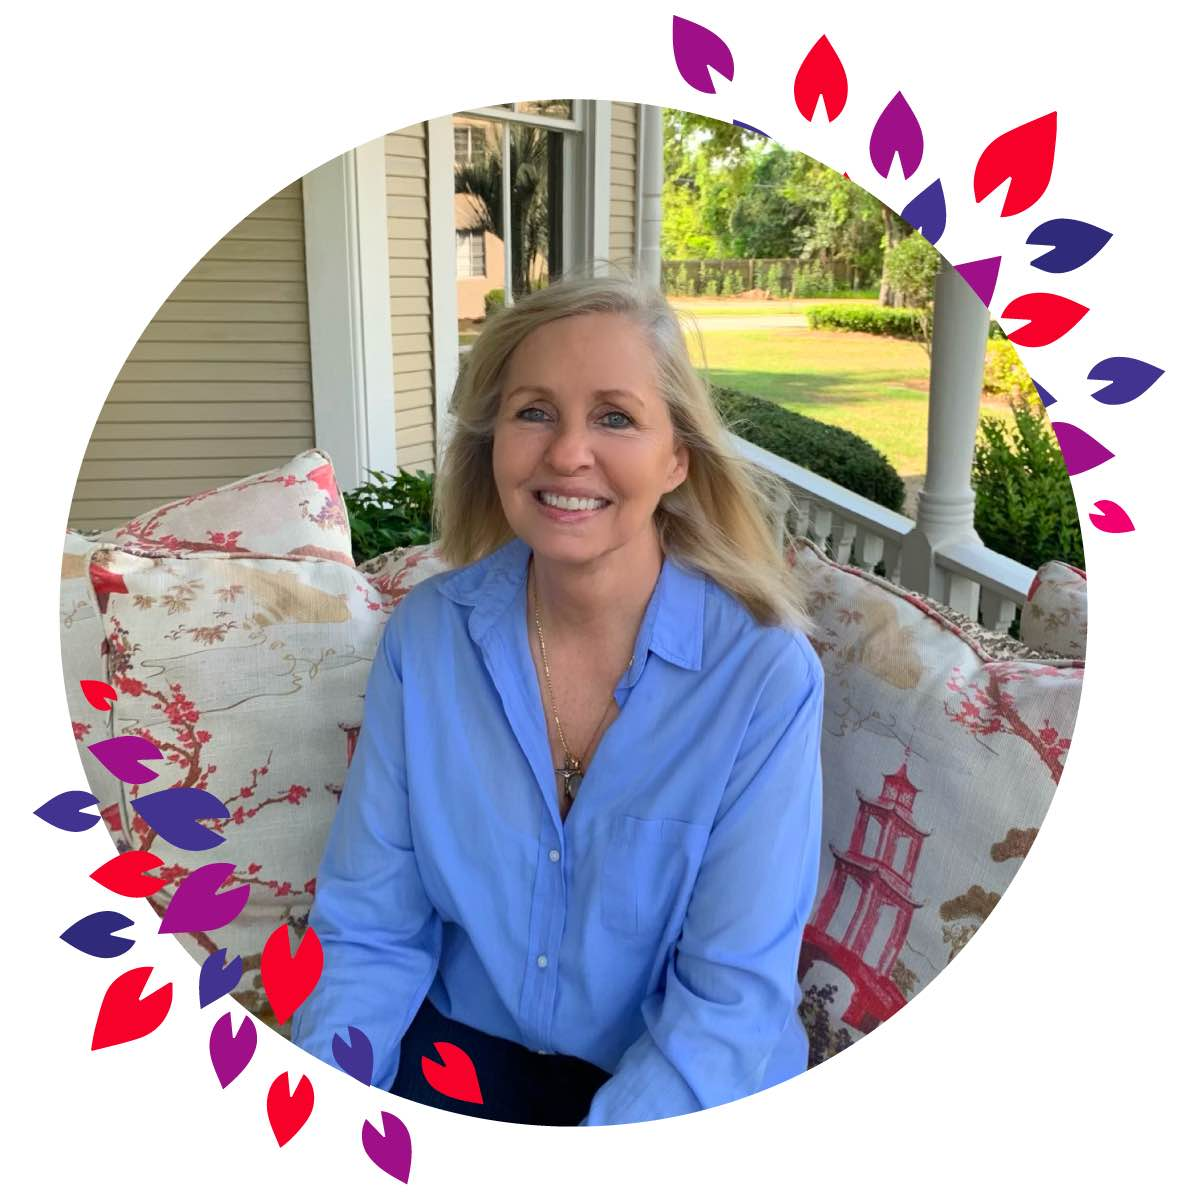 Debbie Mazur the Founder of GraceWay Recovery